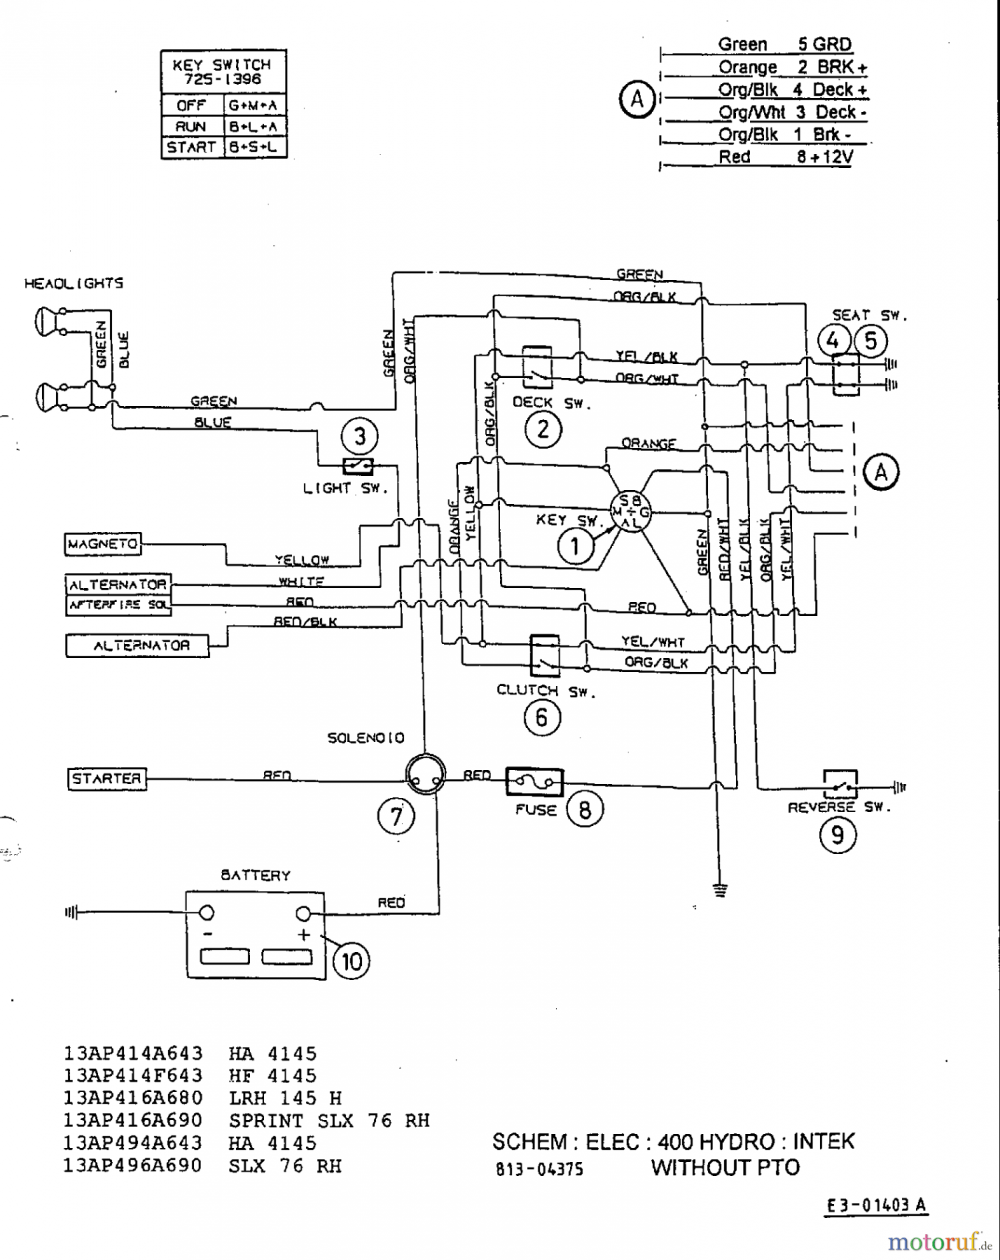 medium resolution of toro lawn mower magneto wiring diagram wiring diagram g11 toro zero turn 74721 wiring diagram